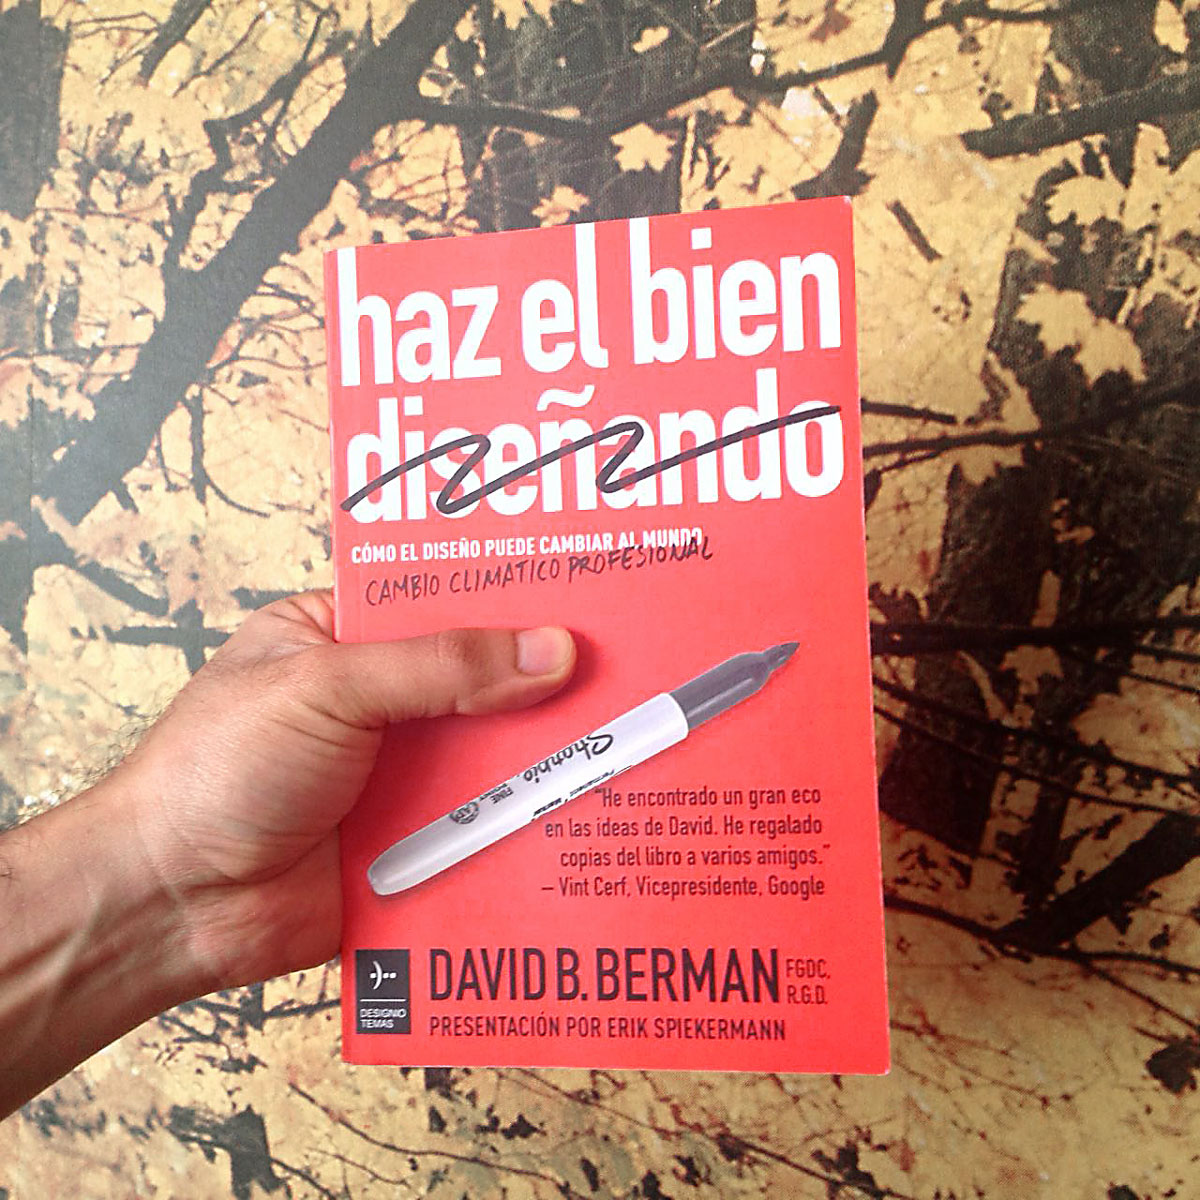 Book: Spanish edition of Do Good [Design], by David Berman